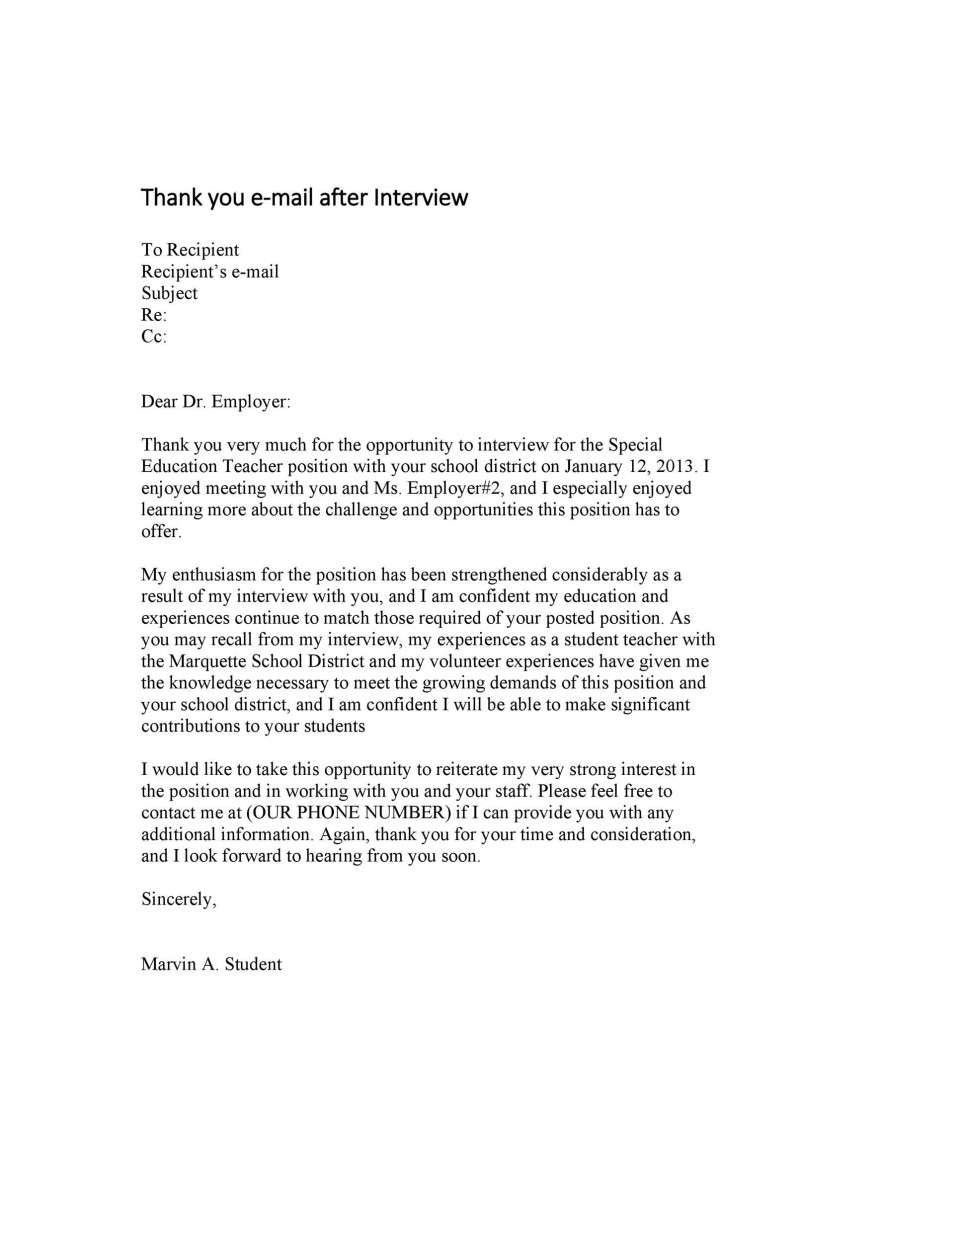 007 Magnificent Post Interview Thank You Note Template Sample  Letter Card Example Medical School960